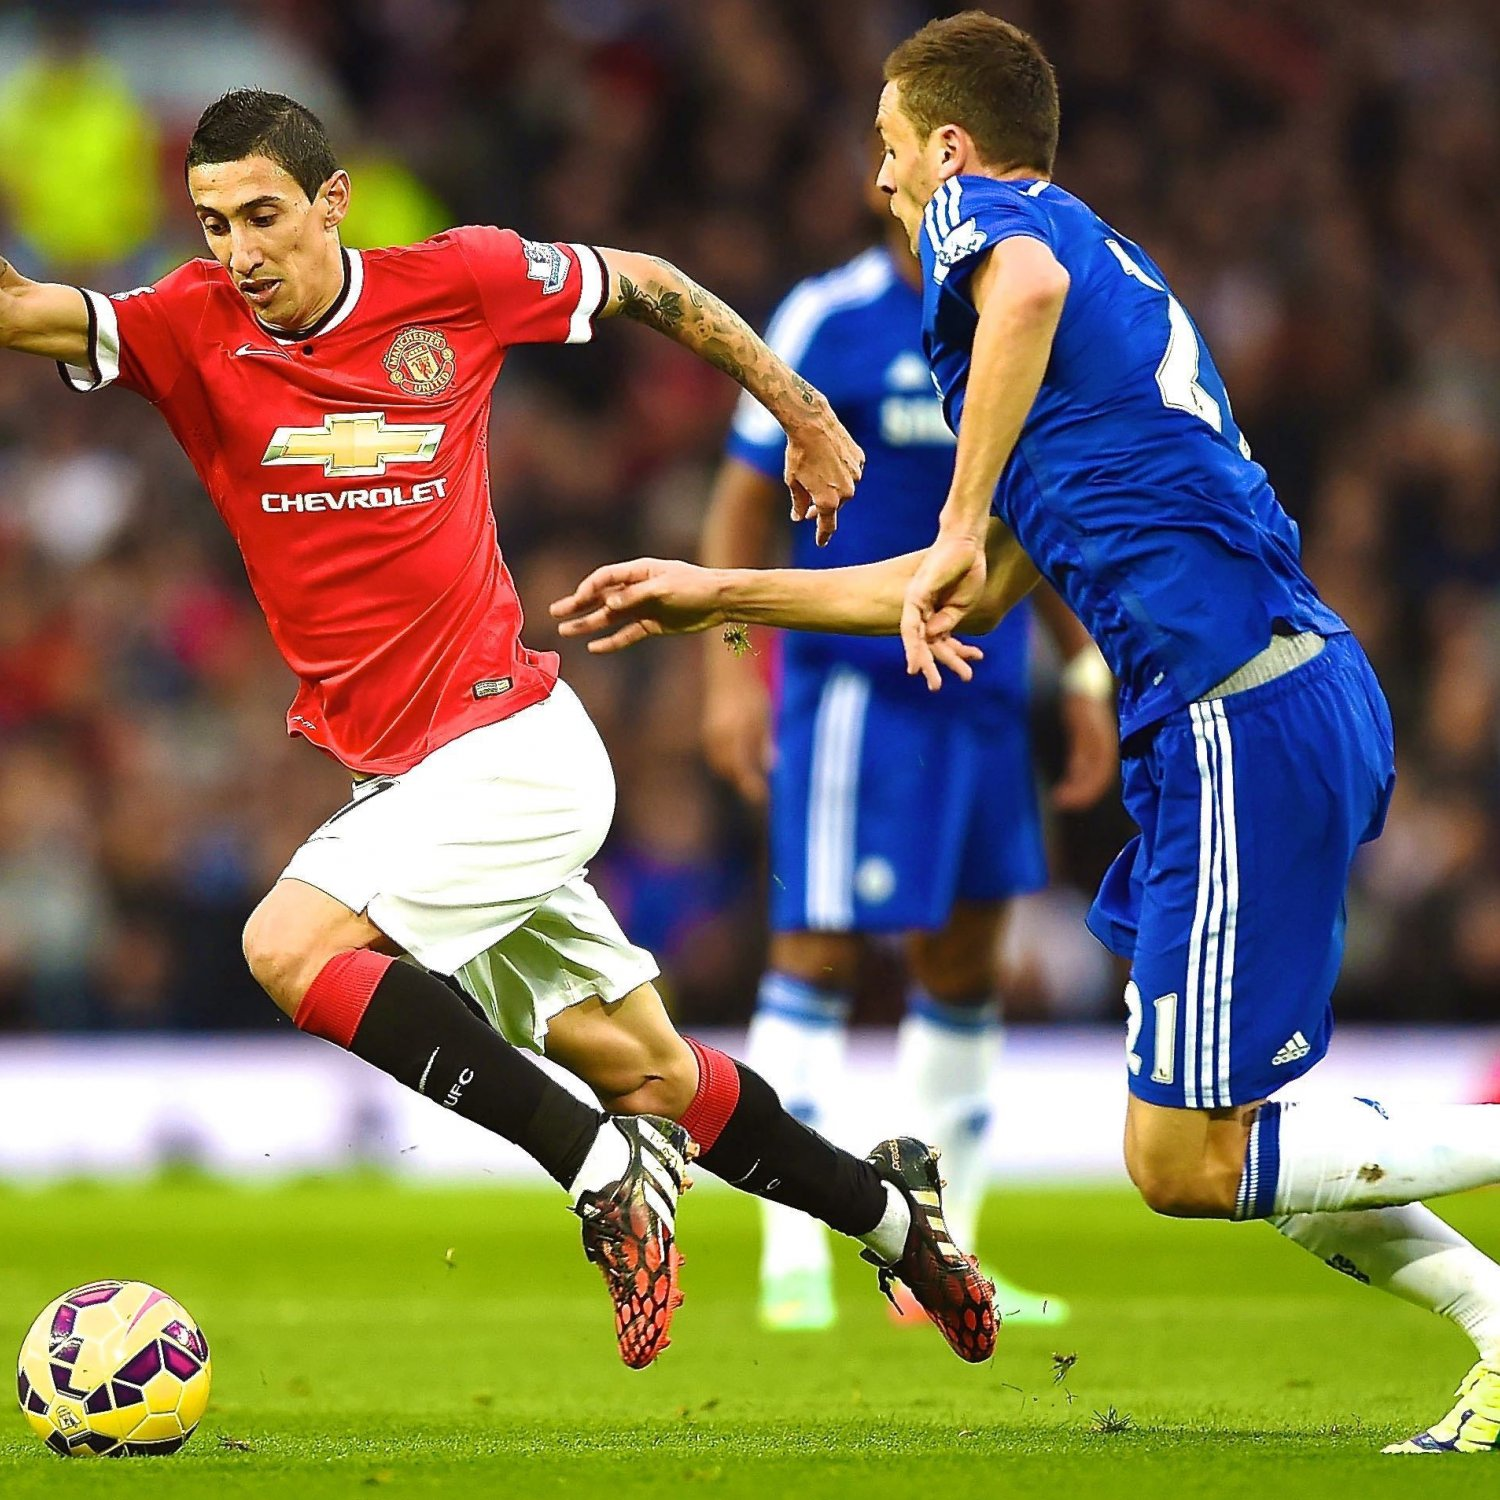 Psg Vs Chelsea Live Score Highlights From Champions: Manchester United Vs. Chelsea: Live Score, Highlights From